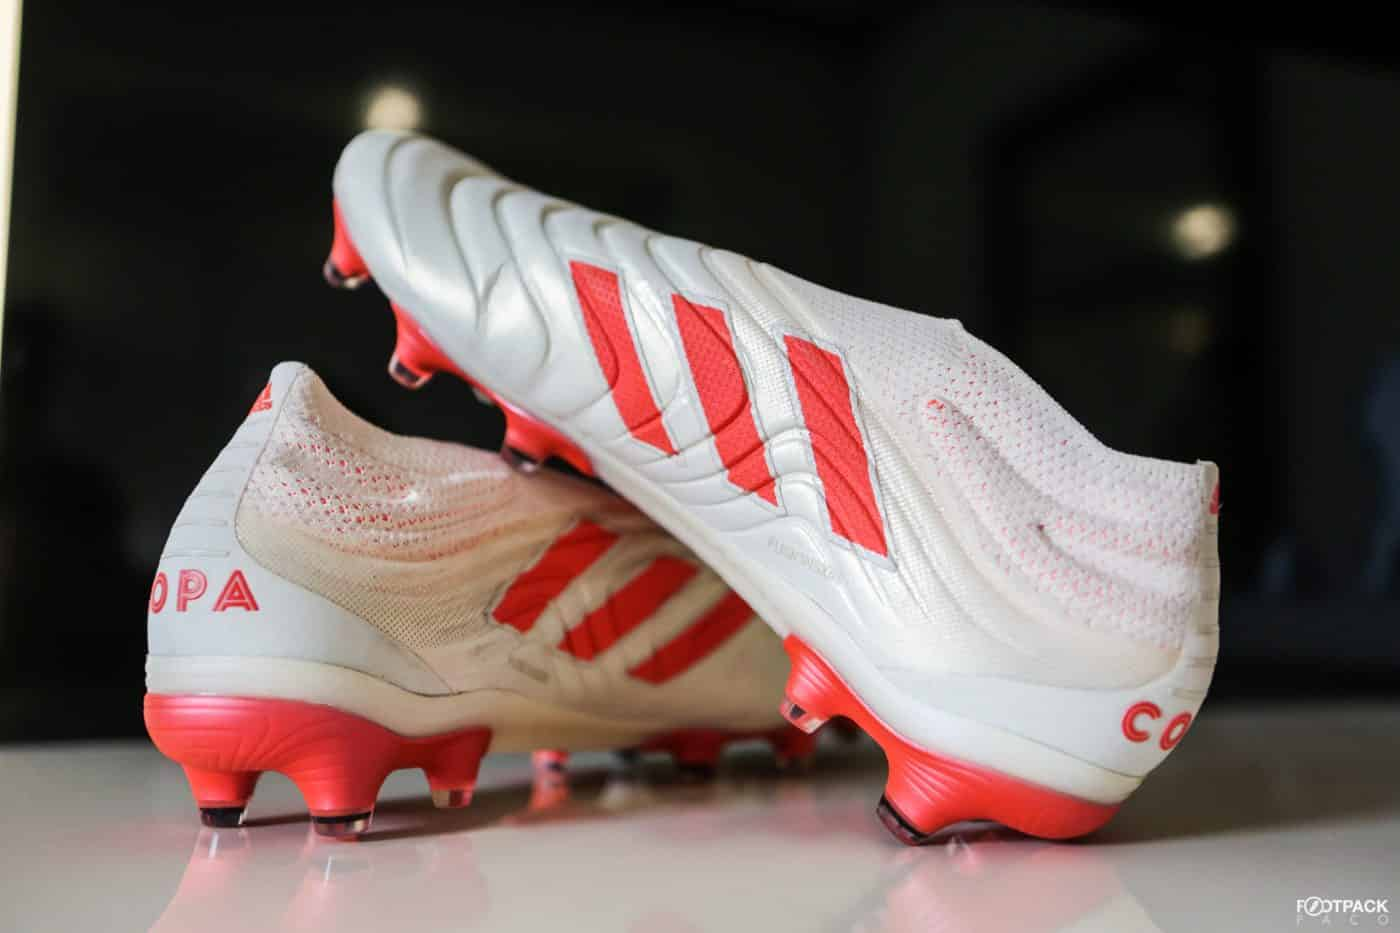 chaussures-football-adidas-copa-19-novembre-2018-6